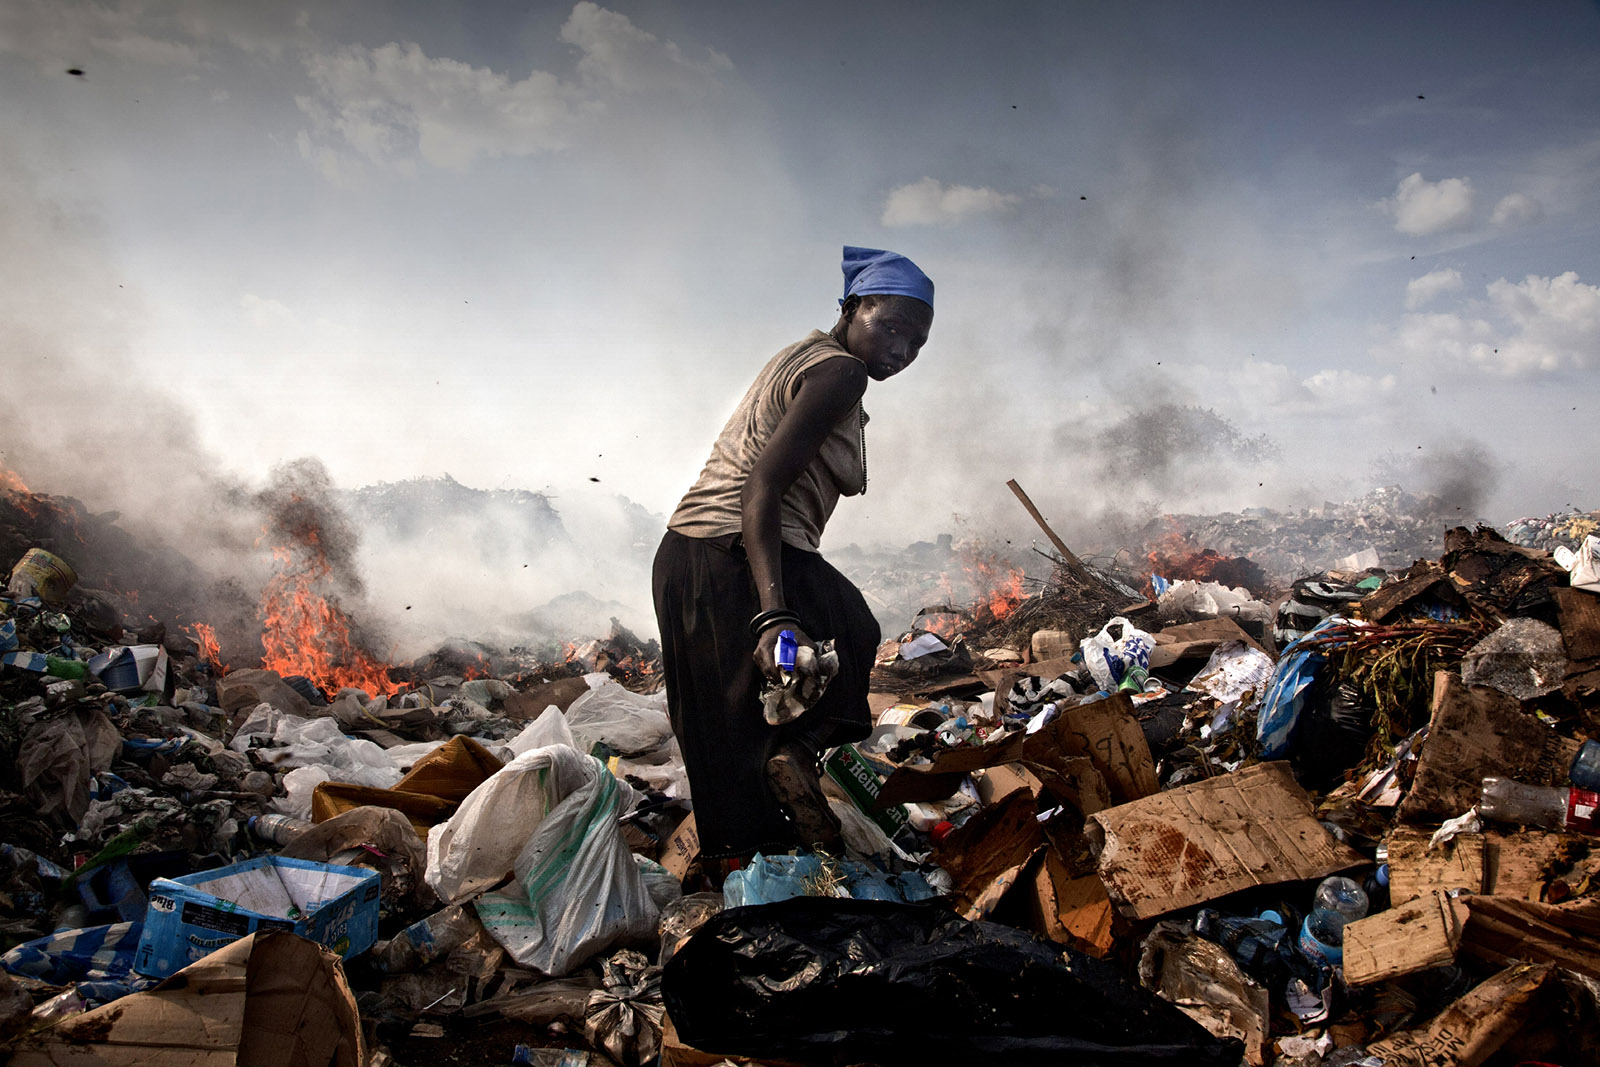 A woman walking through the landfill where she lives, Juba, South Sudan, 2010